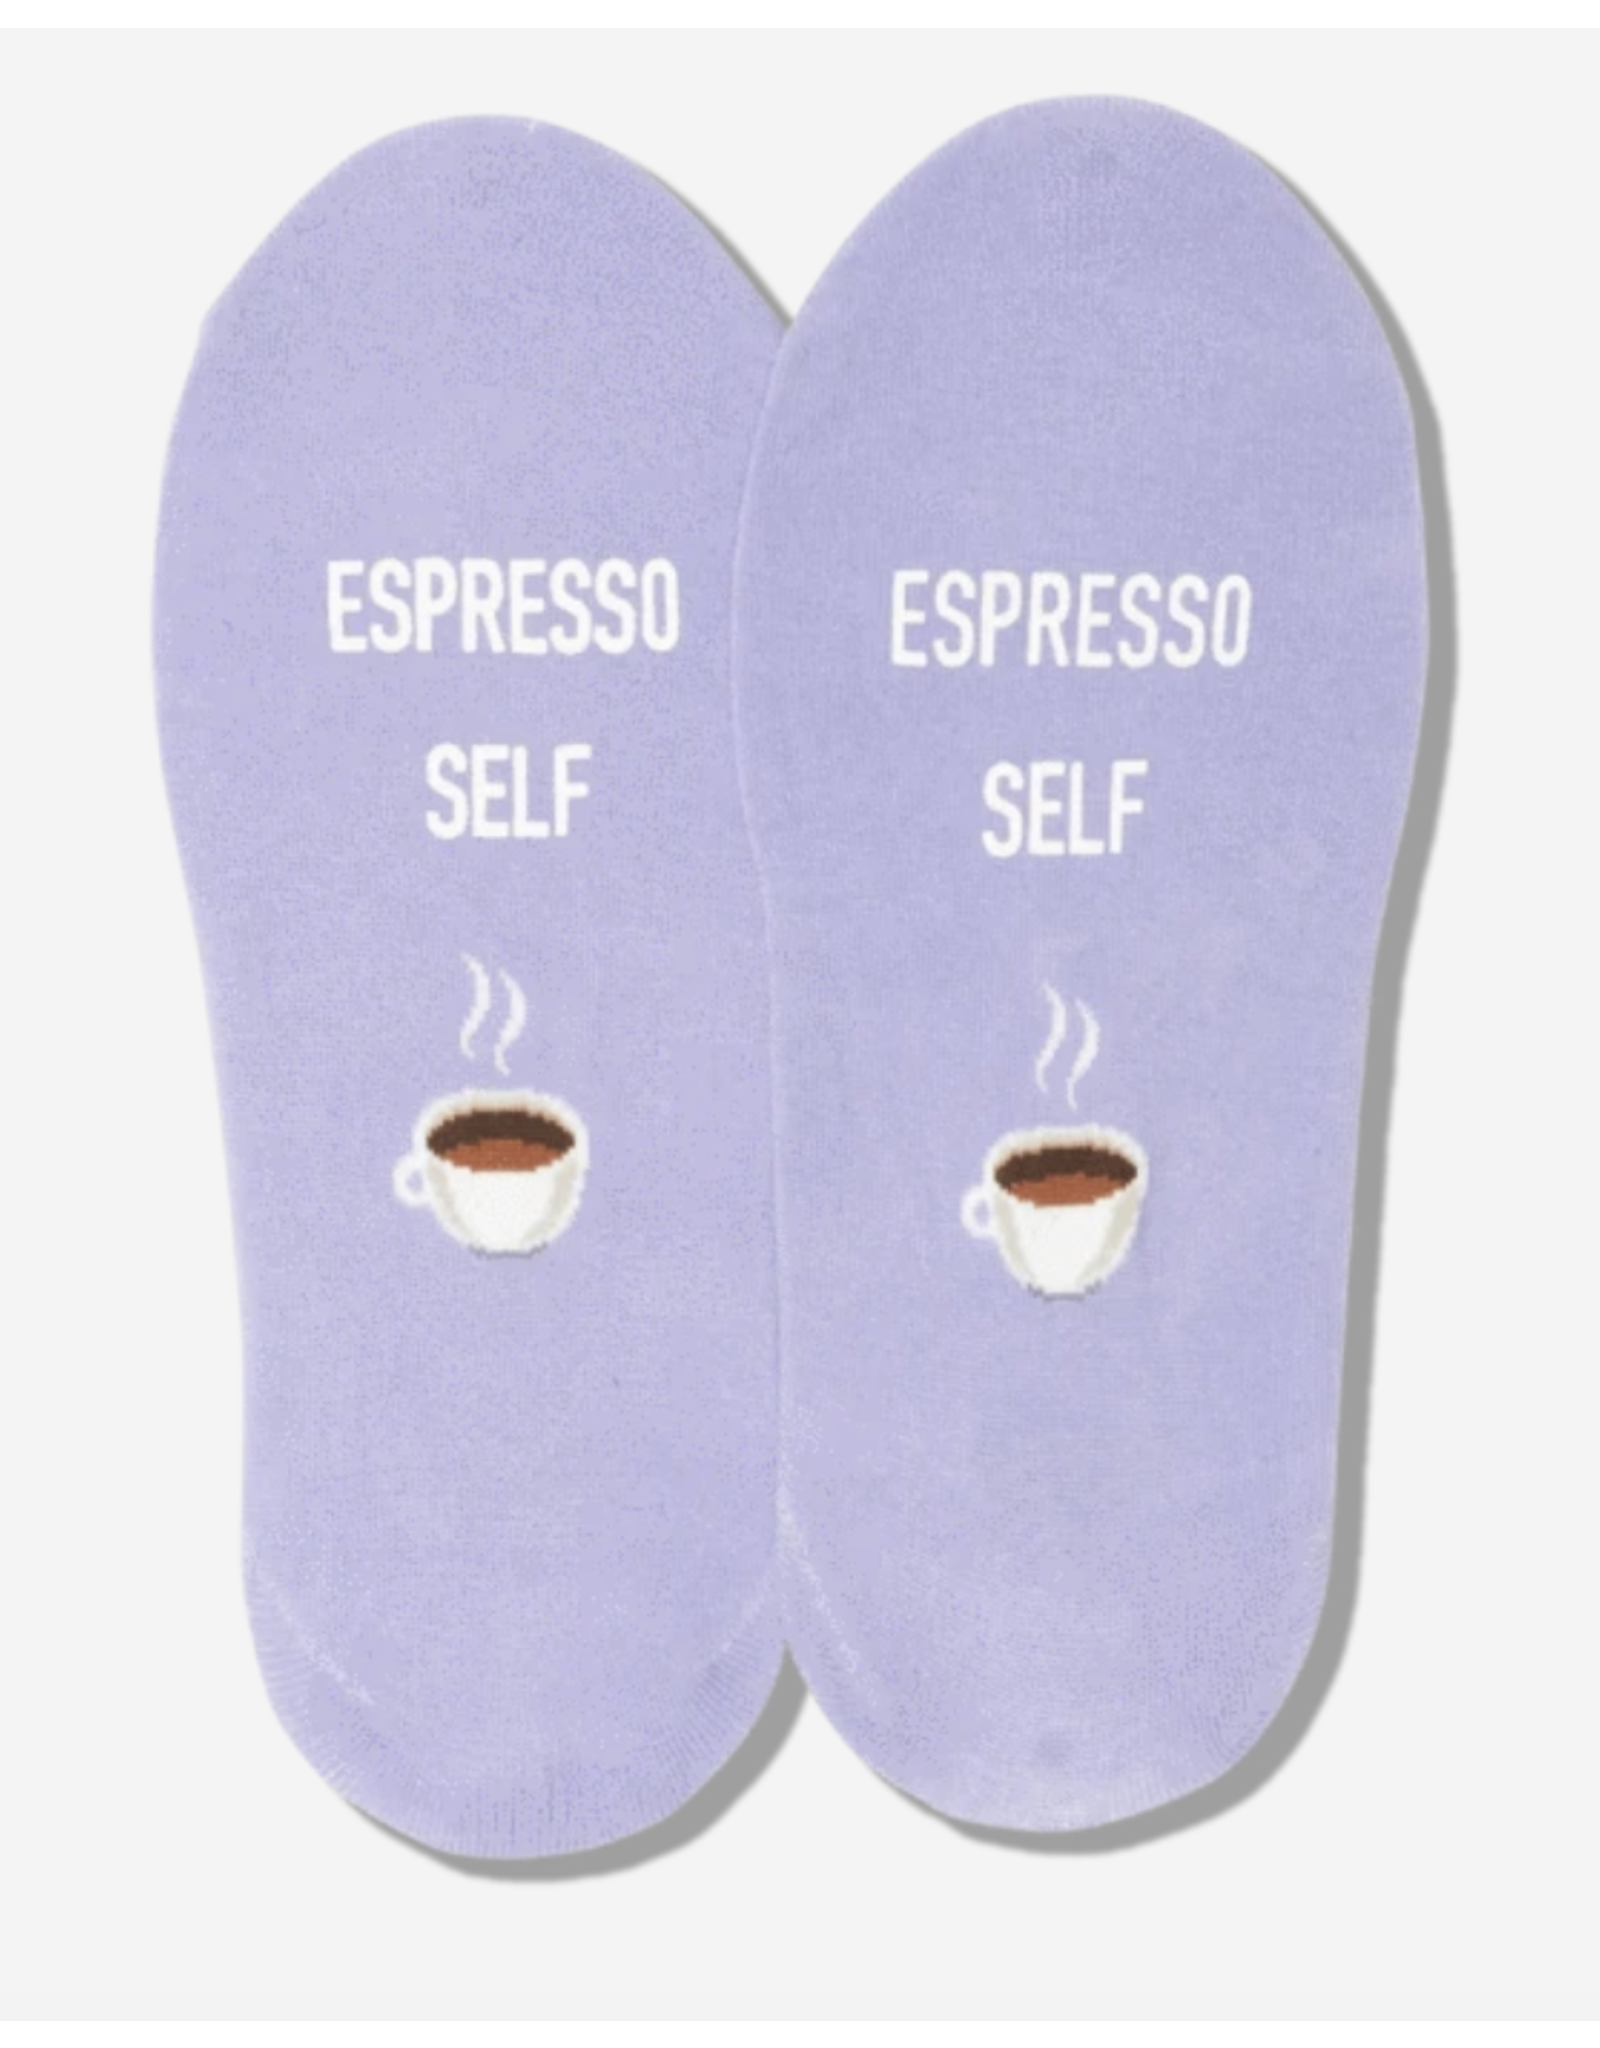 Hot Sox Expresso Self Socks